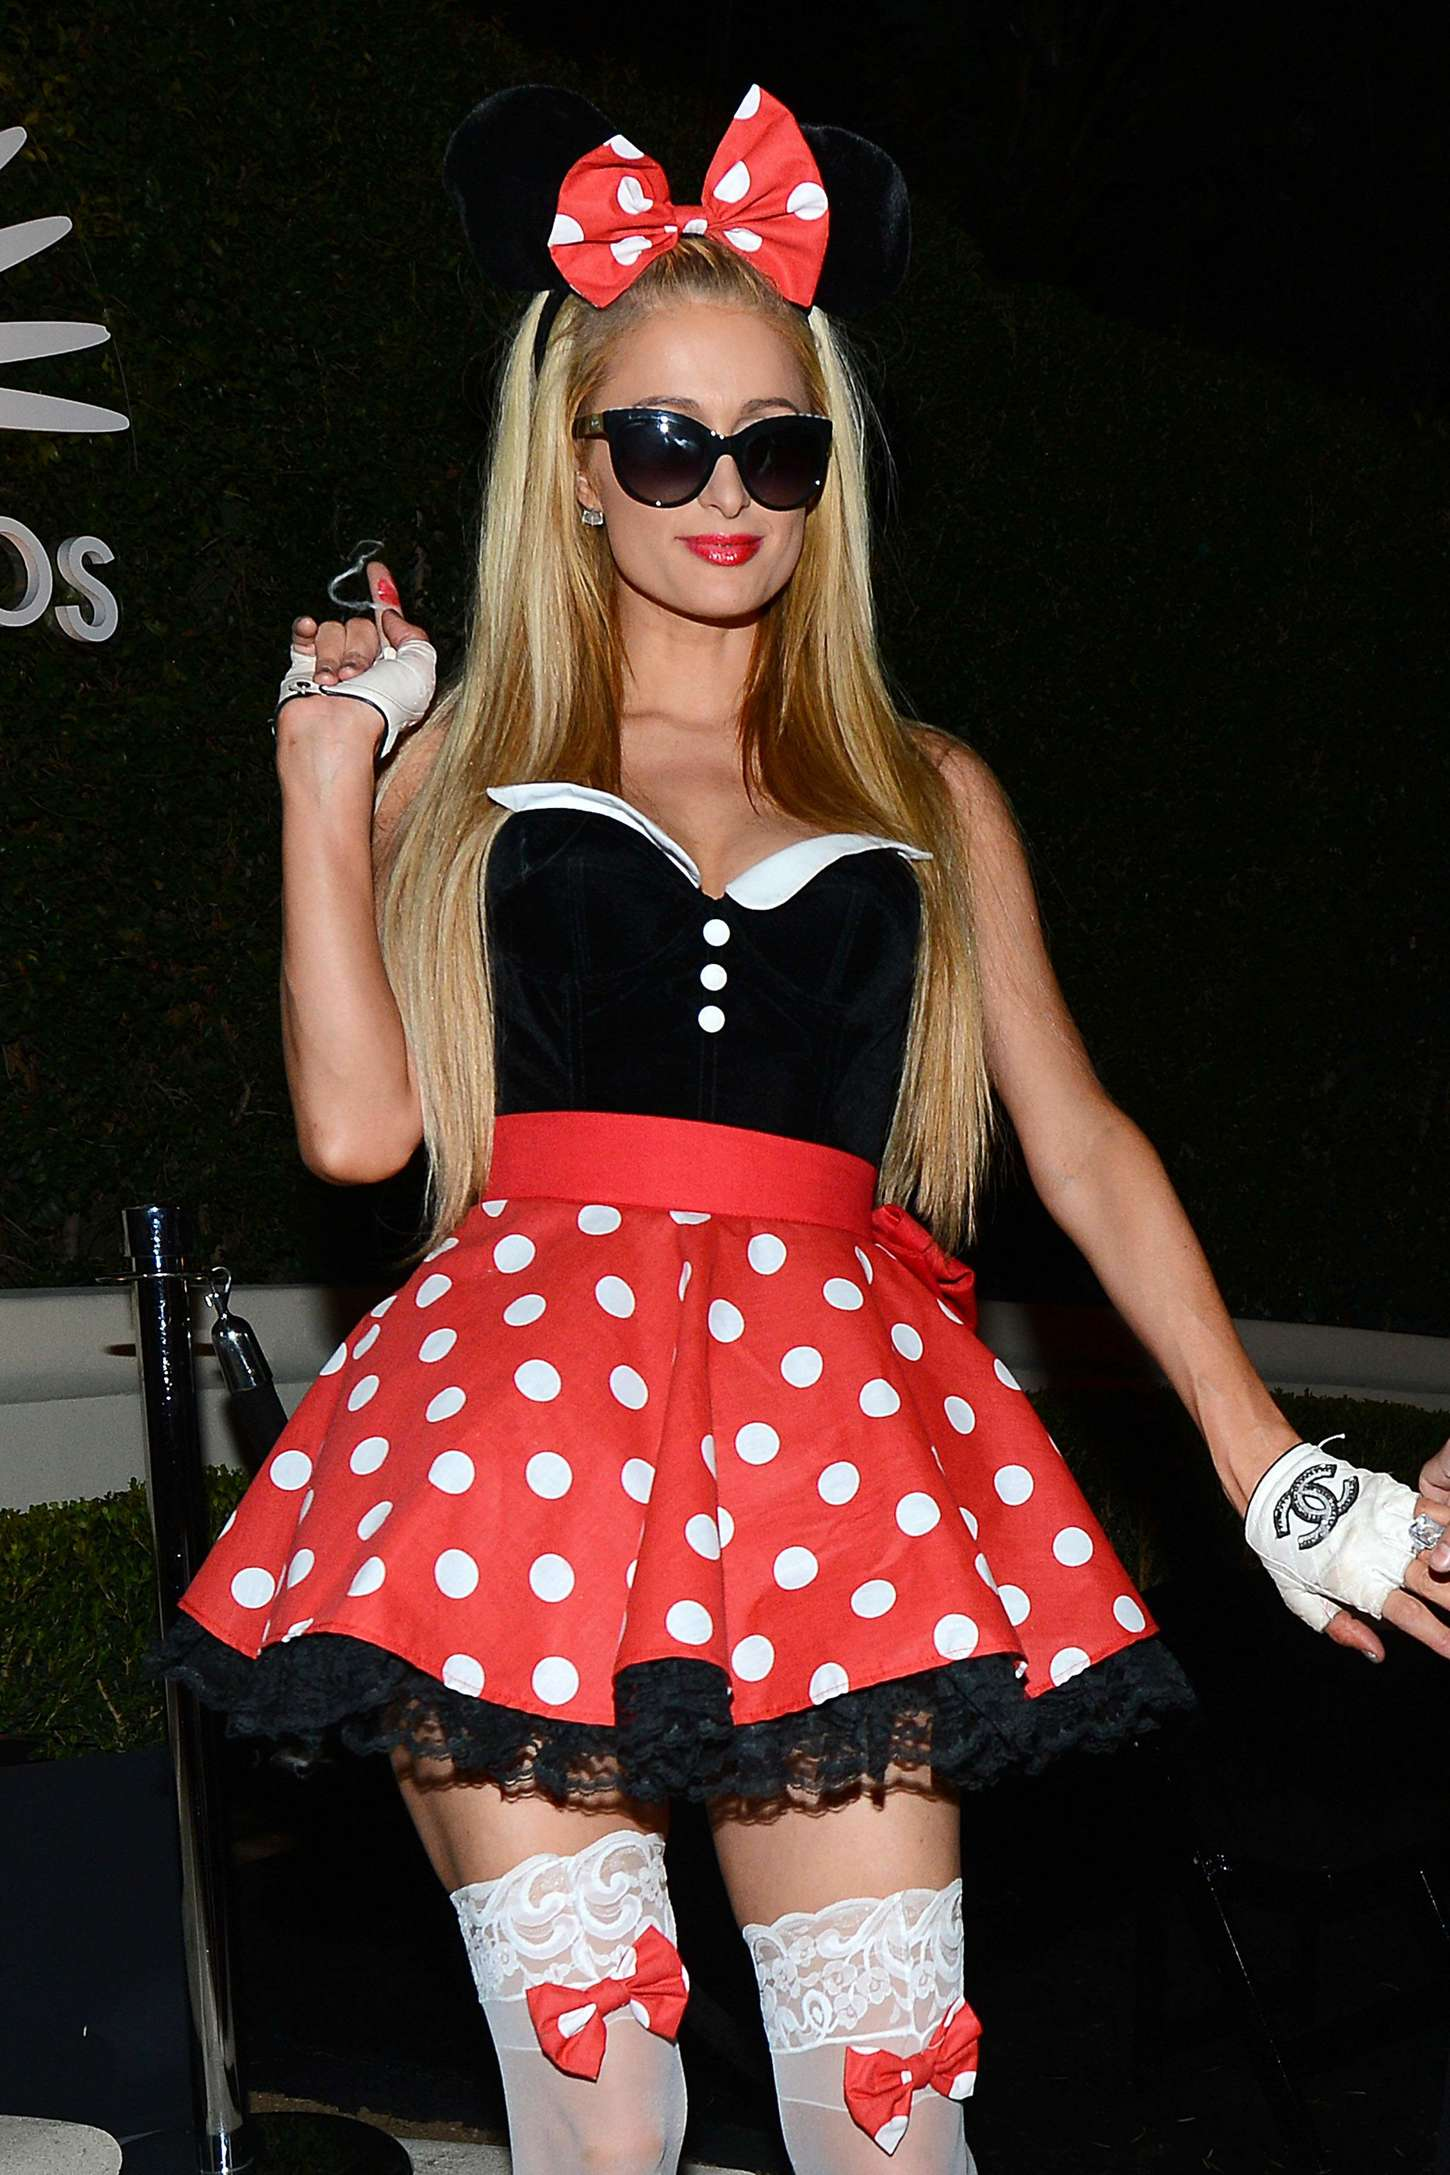 Paris Hilton - Casamigos Tequila's Halloween Party 2014 in Beverly Hills